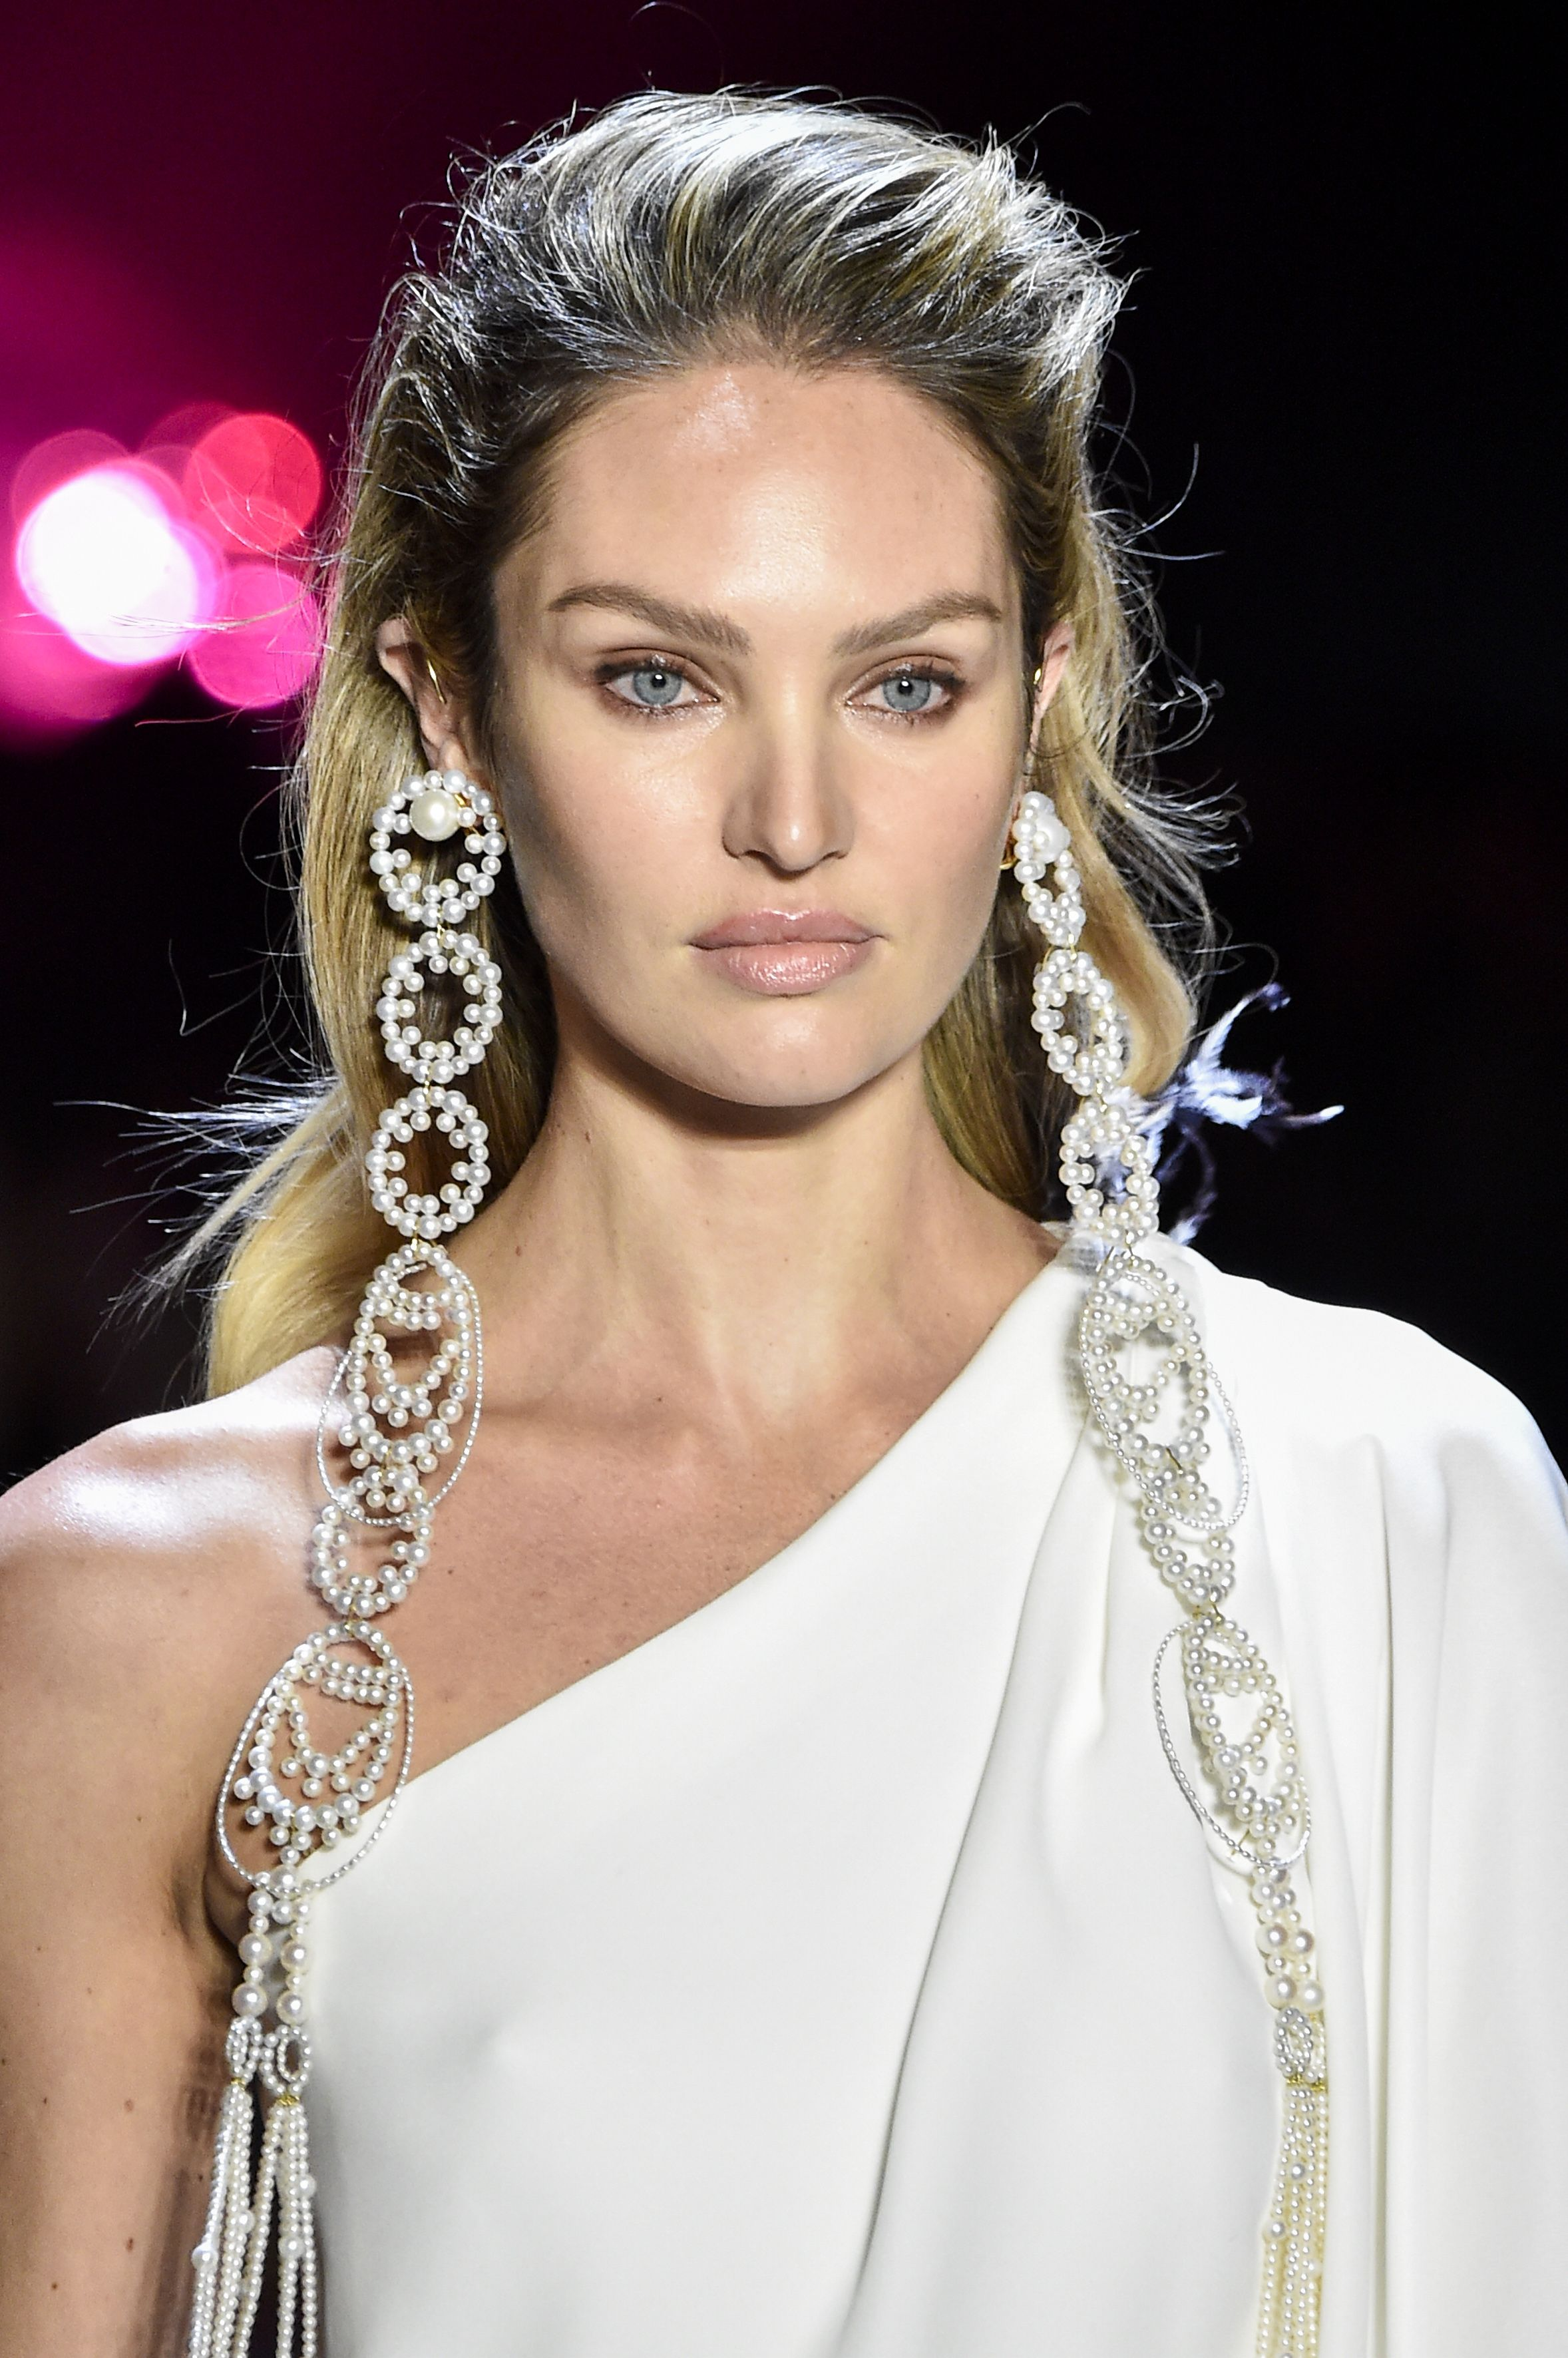 cdb4dfb6e1ff The Best Jewelry on the New York Fashion Week Runways